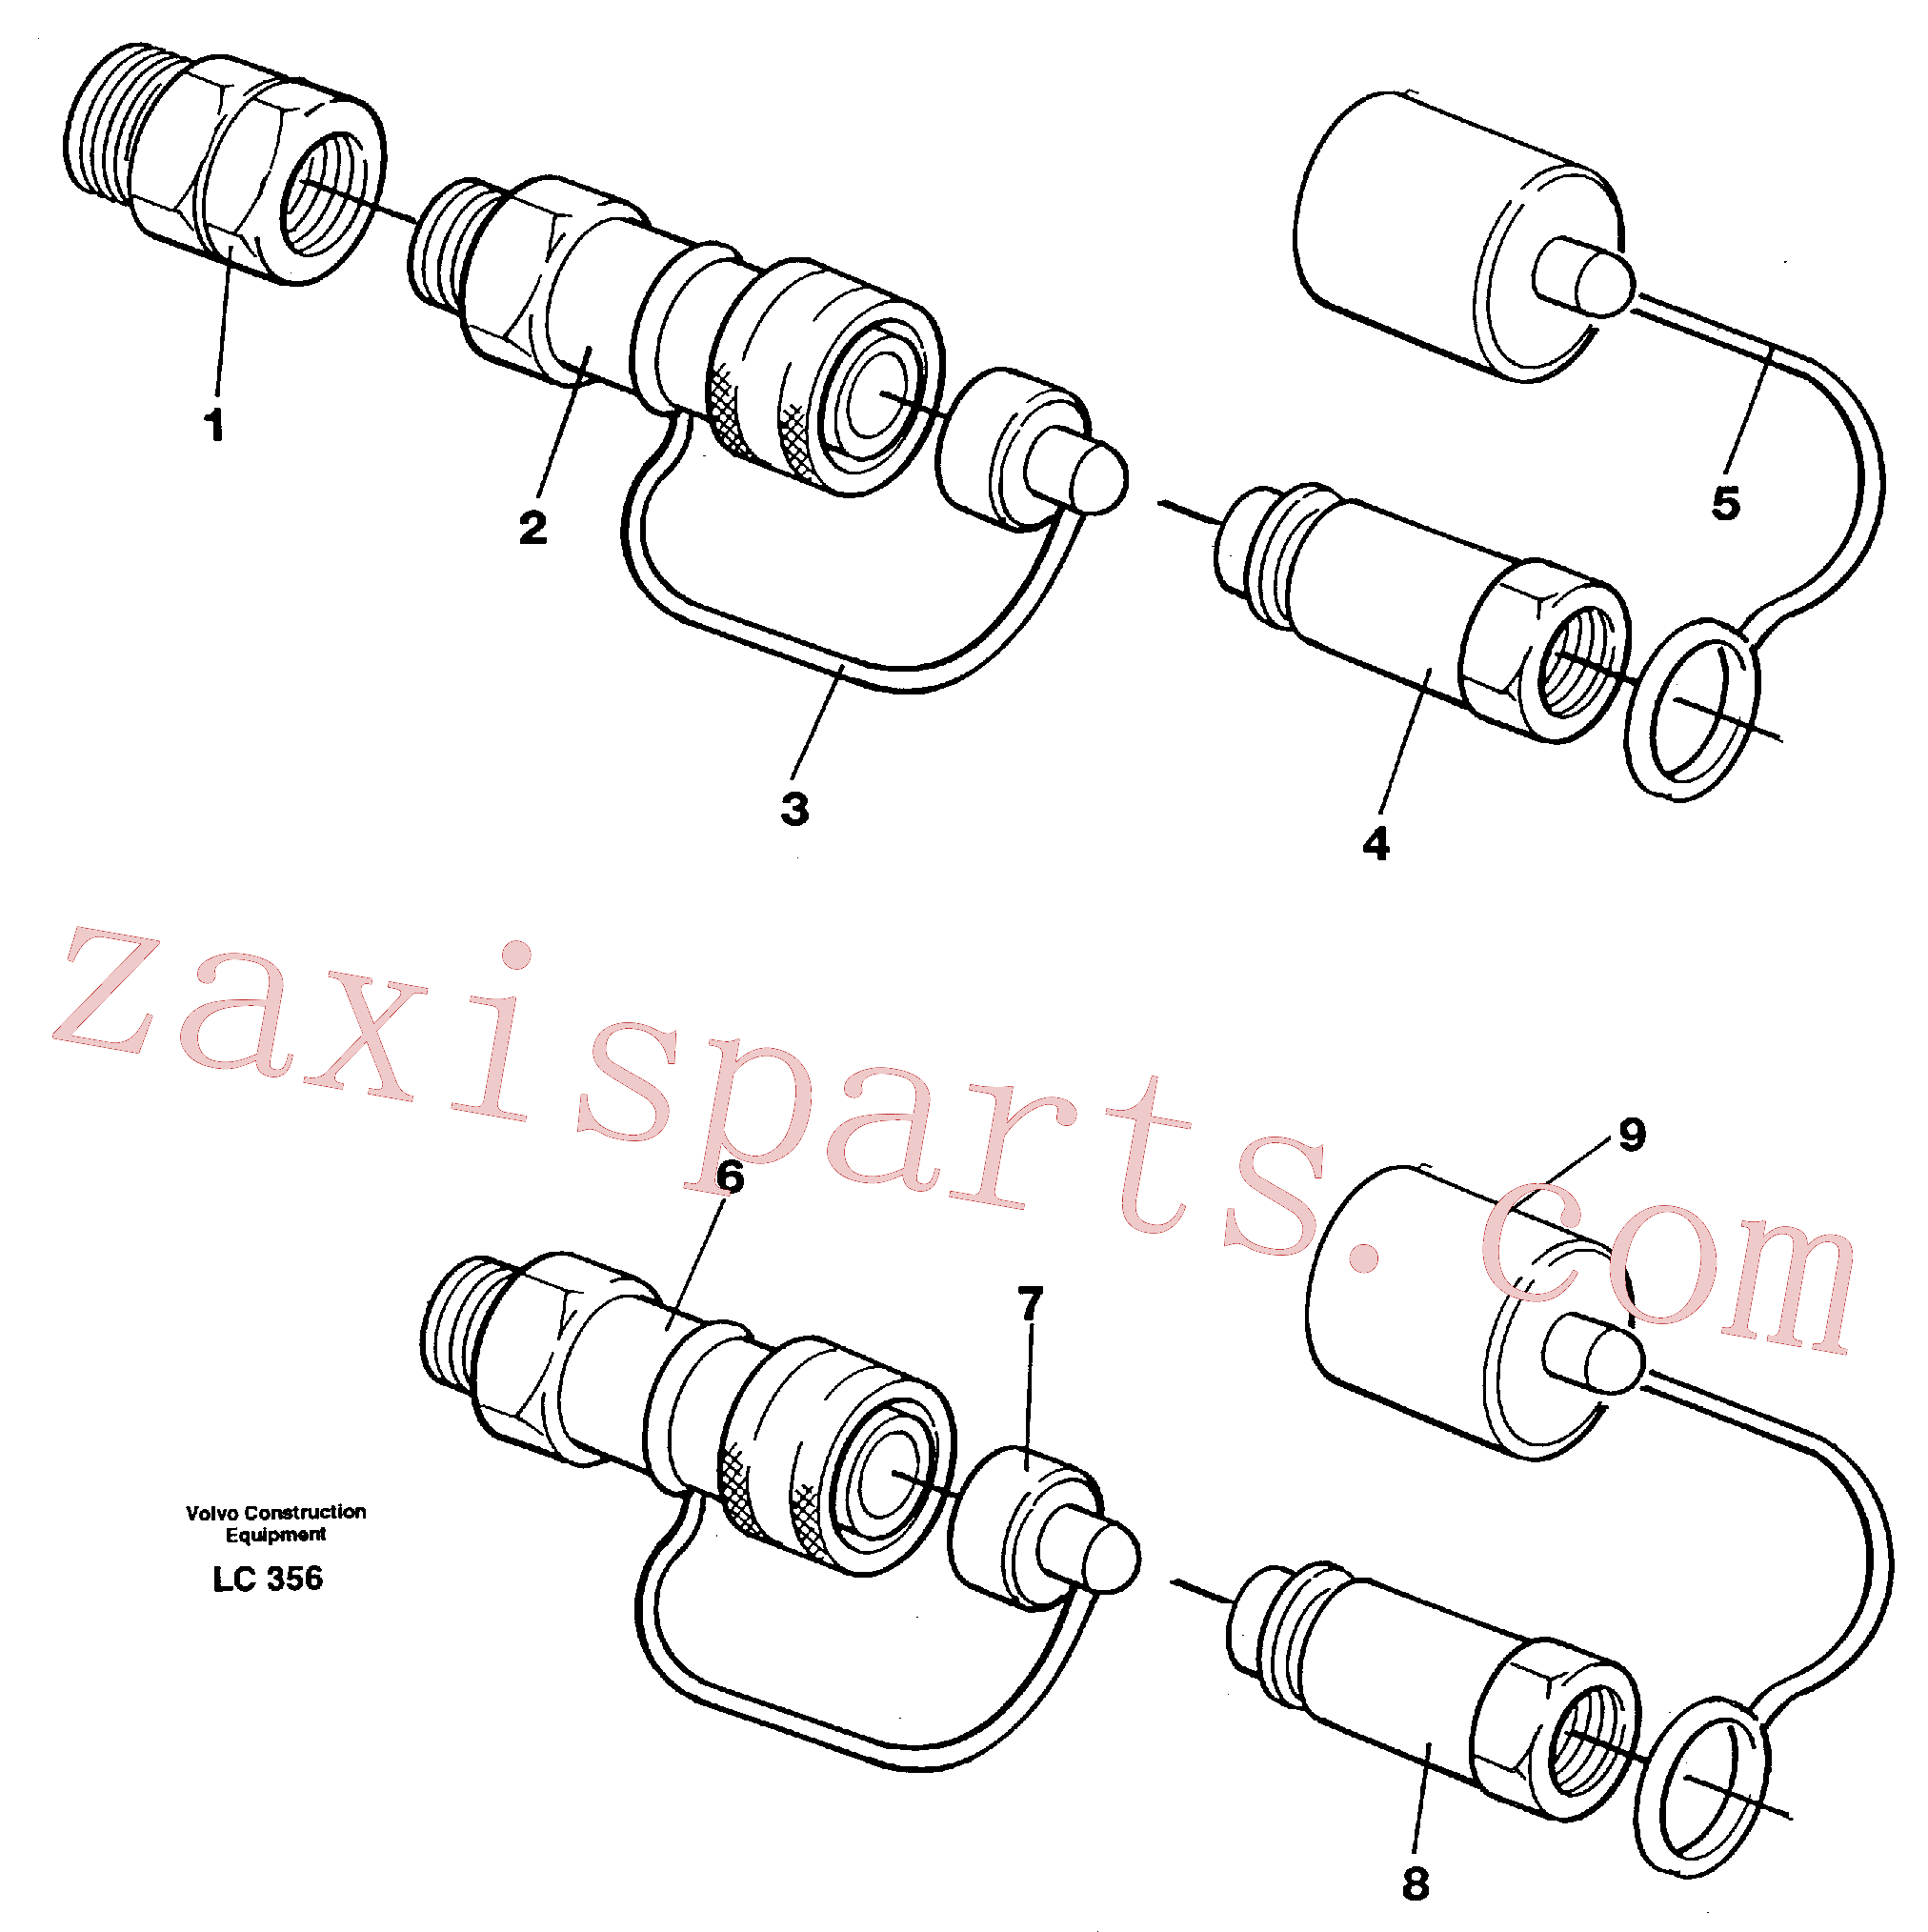 VOE14210942 for Volvo Quick connection kit, grab equipment(LC356 assembly)